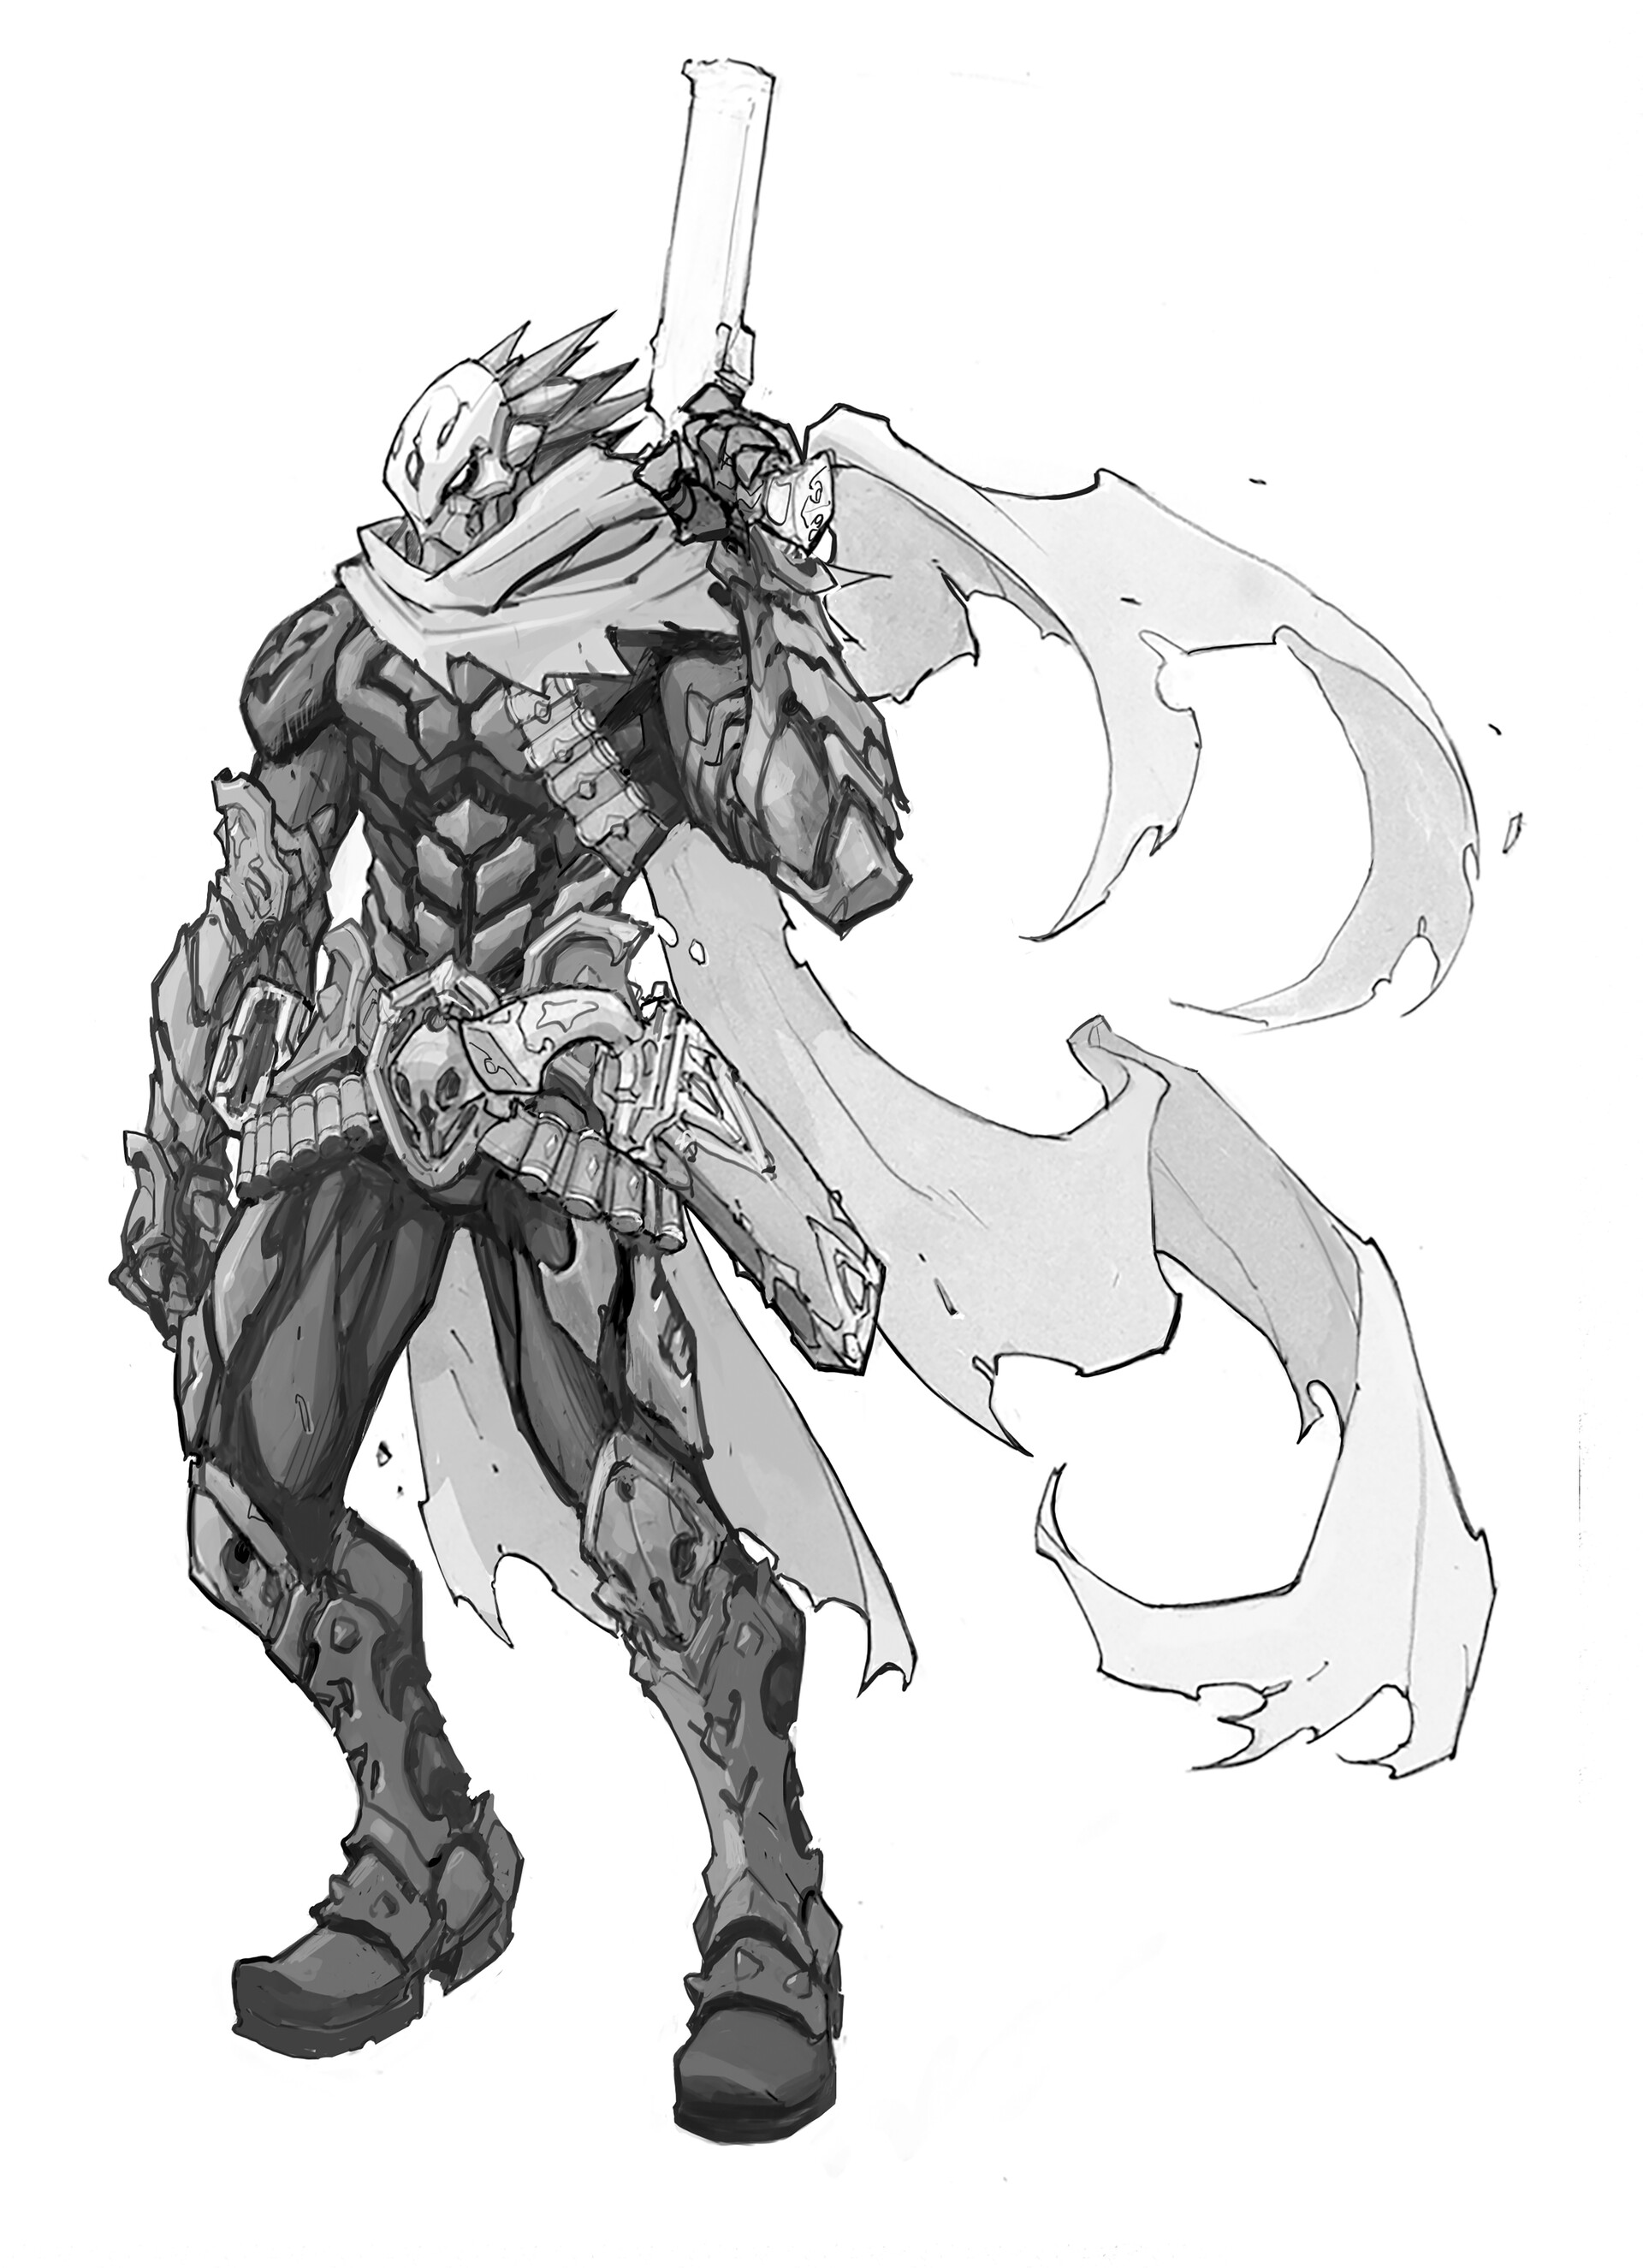 Artstation Darksiders Genesis Joe Madureira